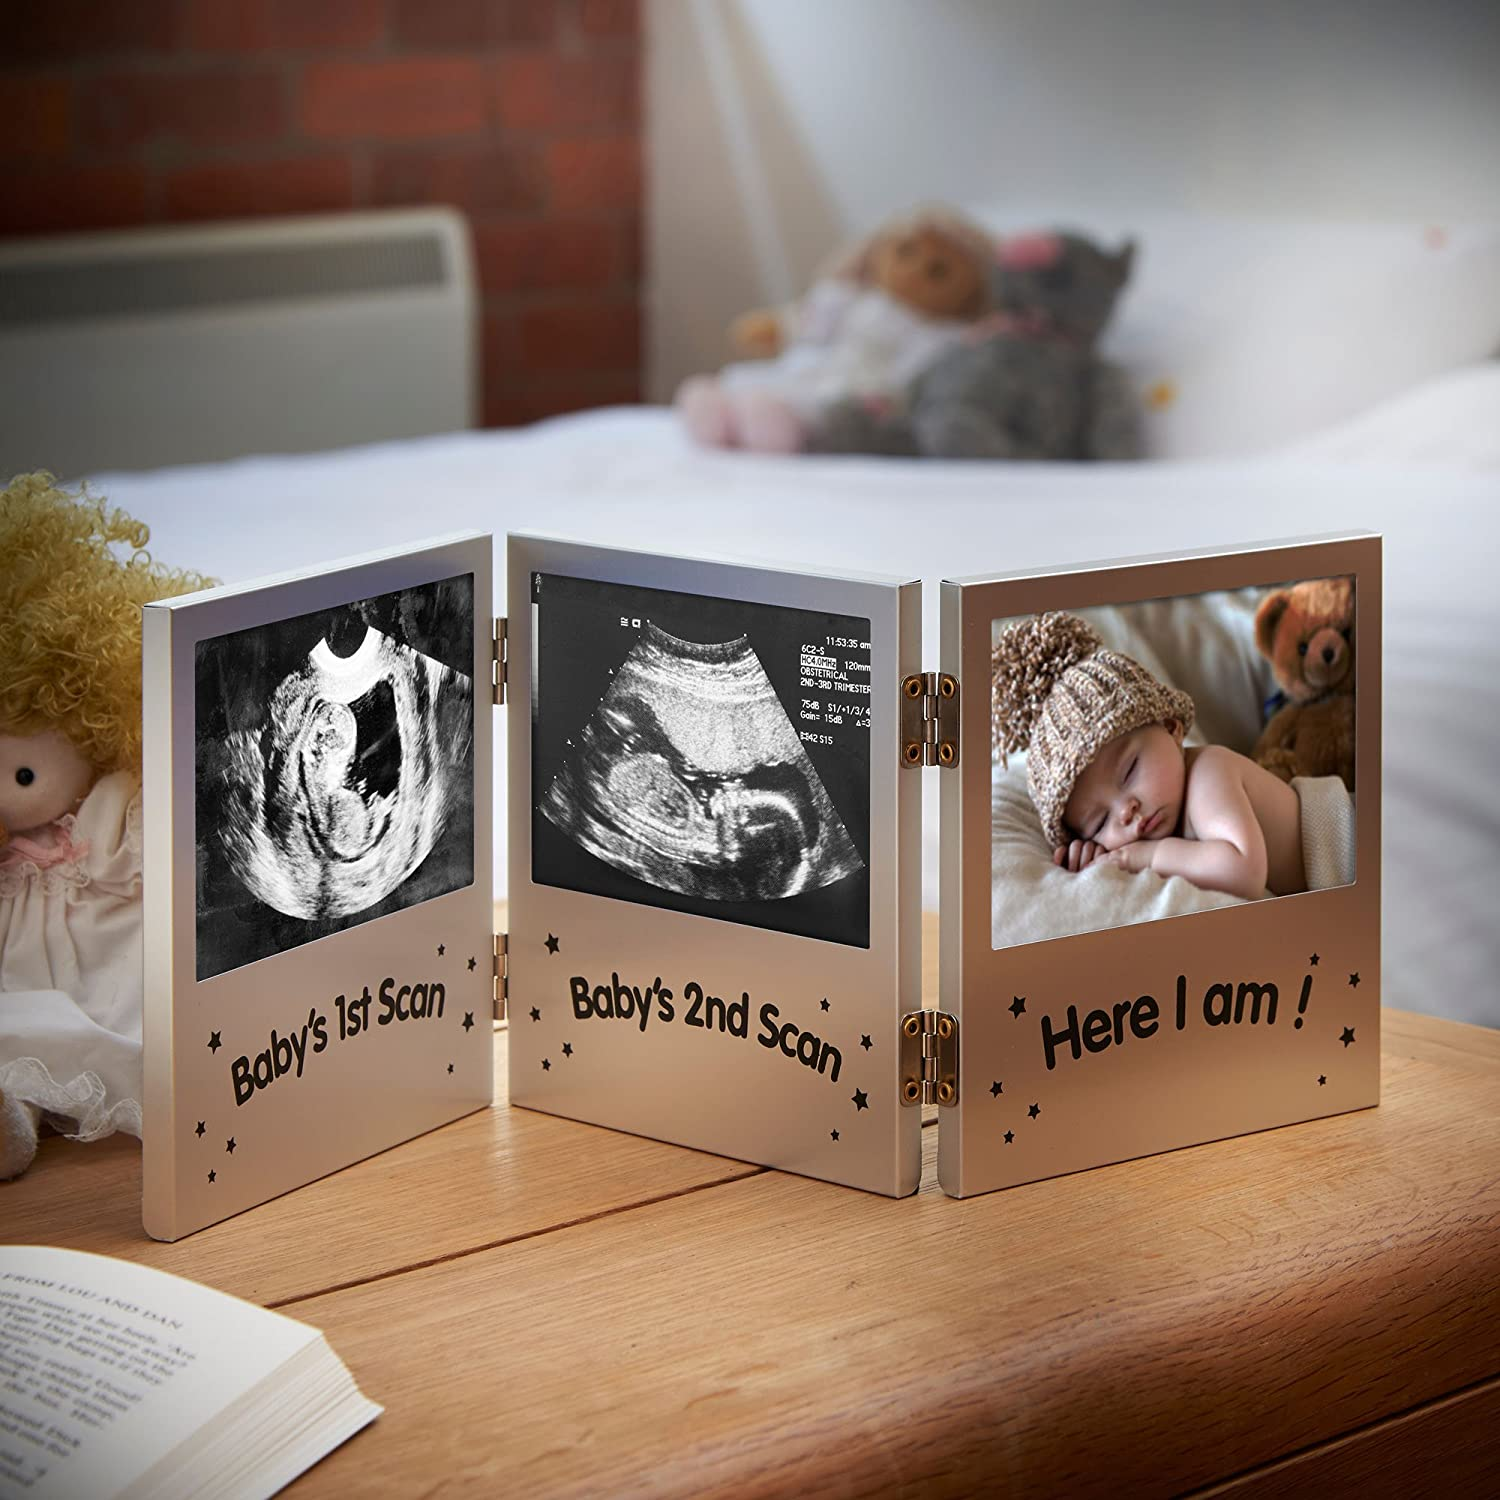 Amazon vonhaus triple picture frame for keepsake ultrasound amazon vonhaus triple picture frame for keepsake ultrasound sonogram pregnancy scan images and baby photos the perfect gift idea baby jeuxipadfo Gallery